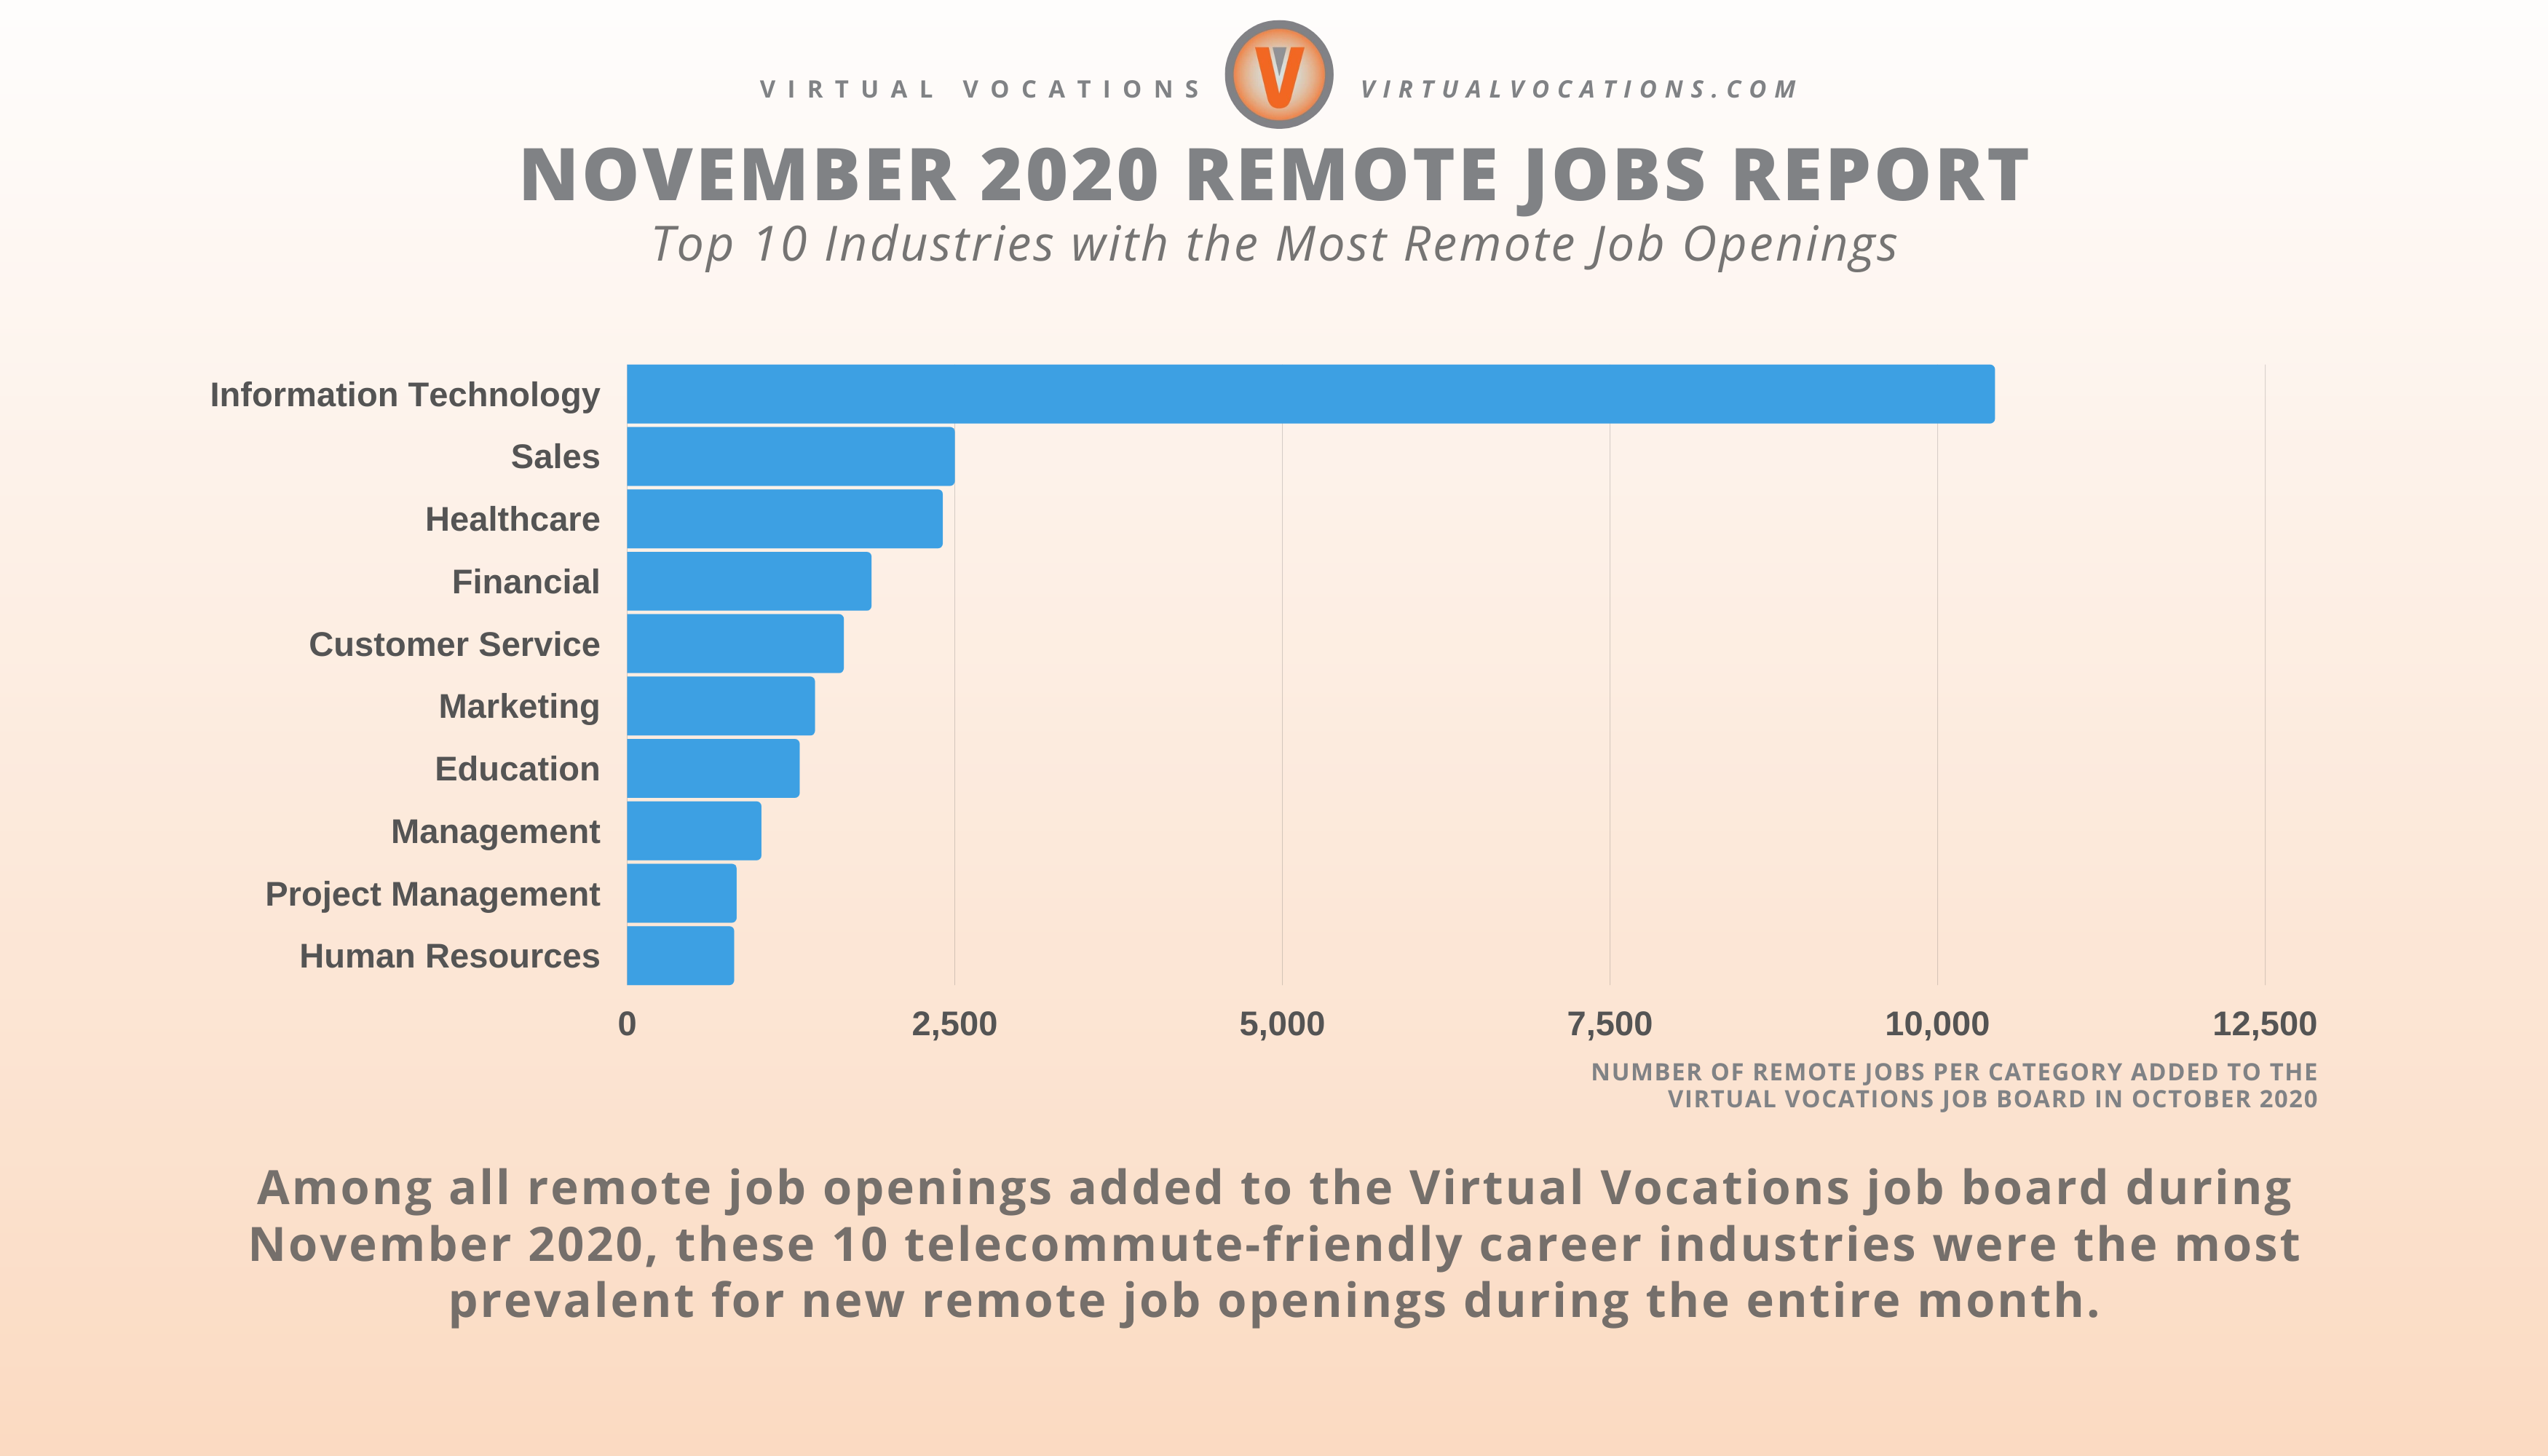 Virtual Vocations November Remote Jobs Report - Top 10 Industries with the Most Remote Job Openings